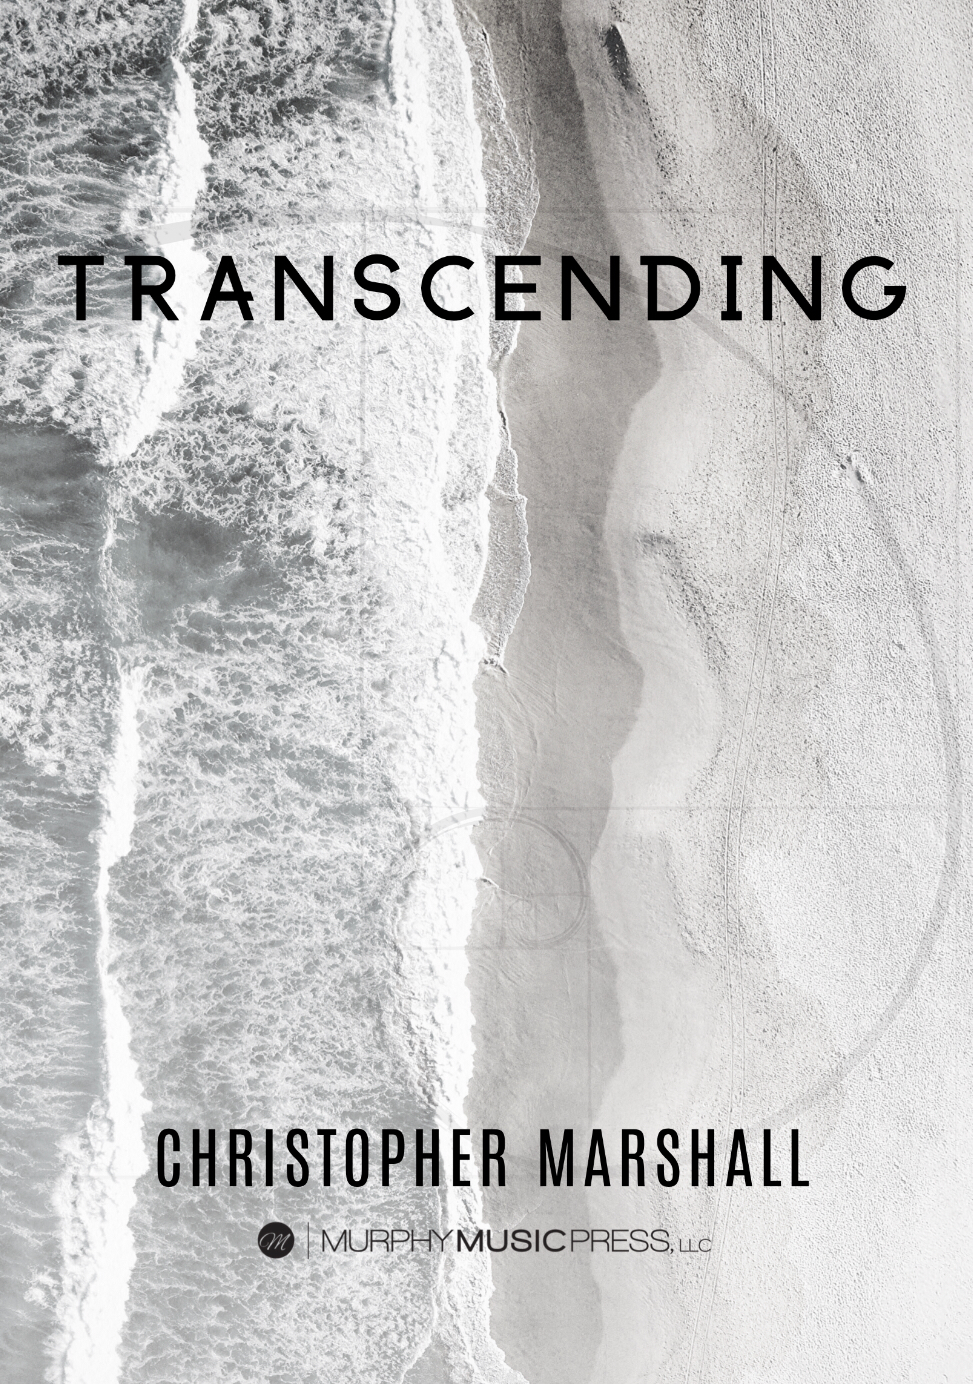 Transcending by Christopher Marshall